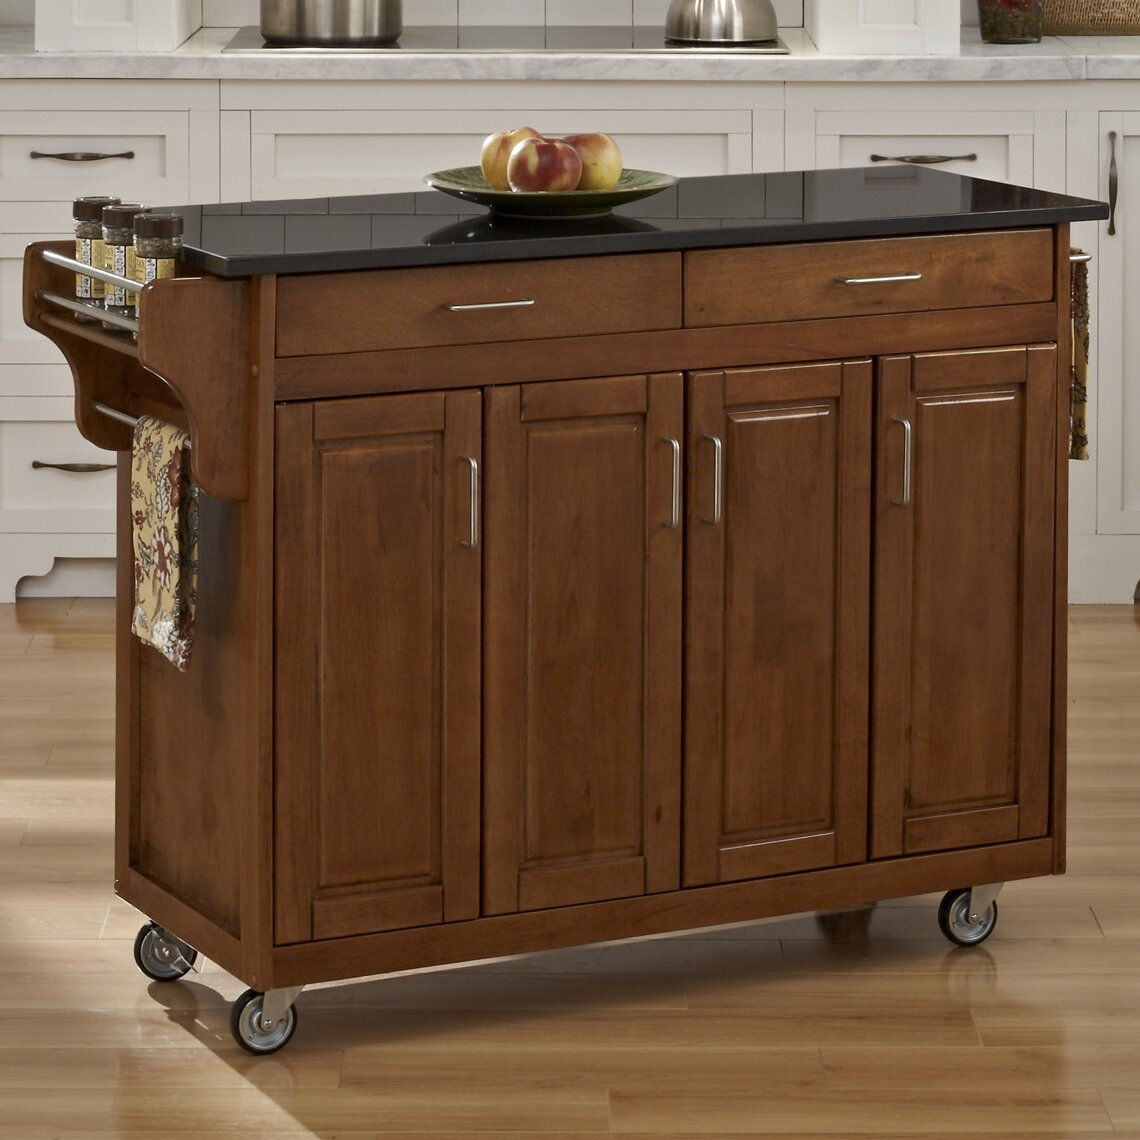 Kitchen Island With Granite Top: August Grove Regiene Kitchen Island With Granite Top